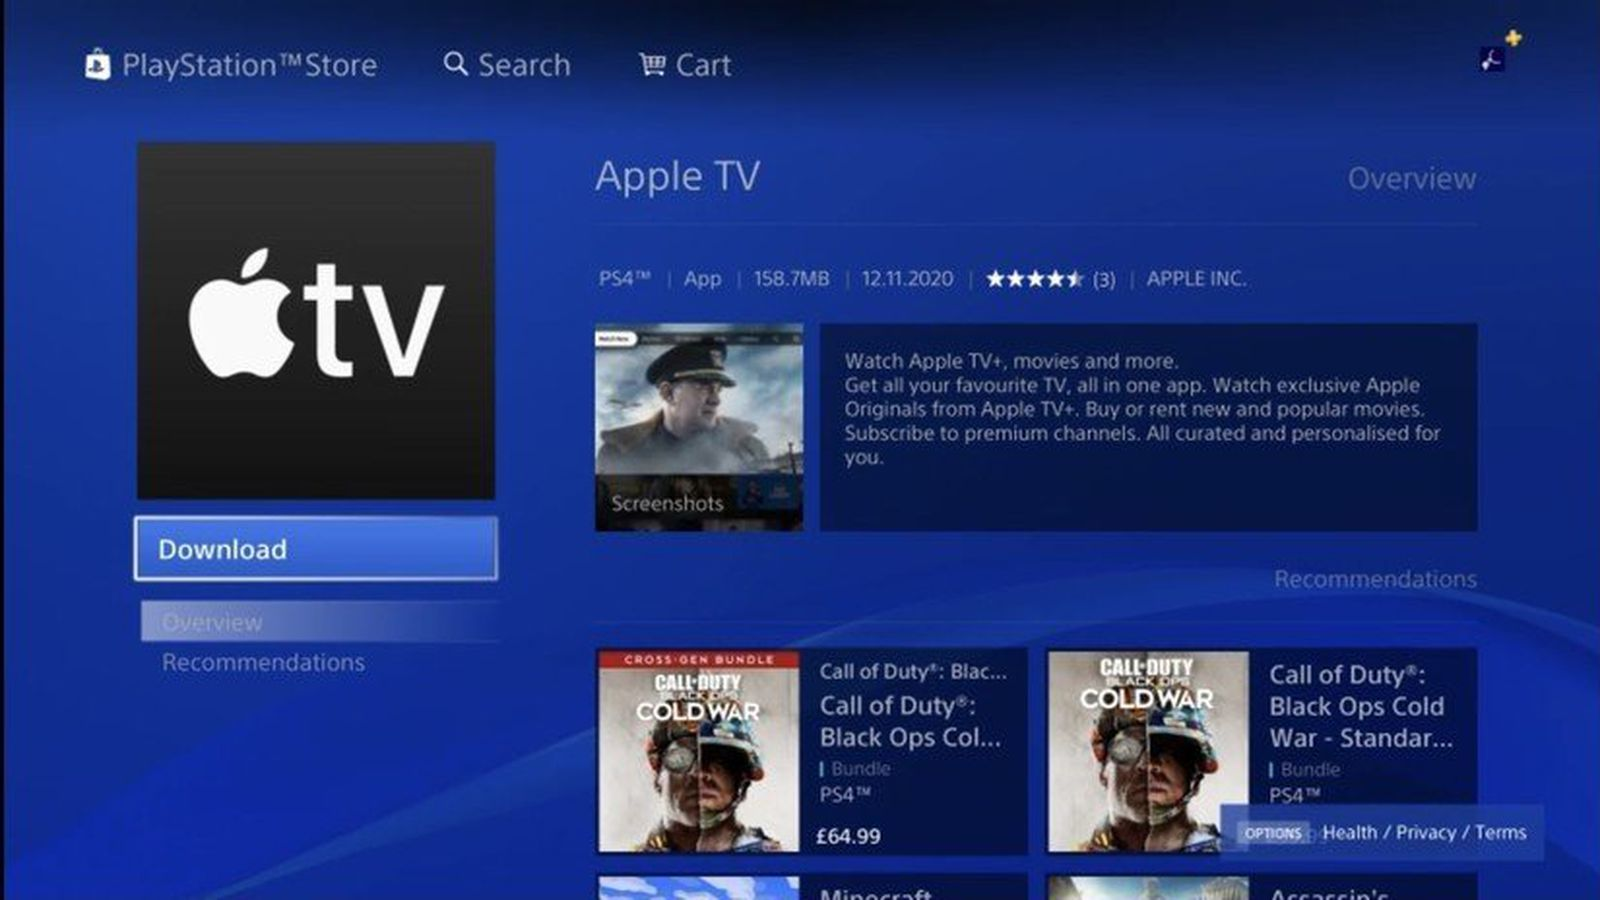 Apple TV App Now Available to Download on PlayStation 4 and PlayStation 5 -  MacRumors